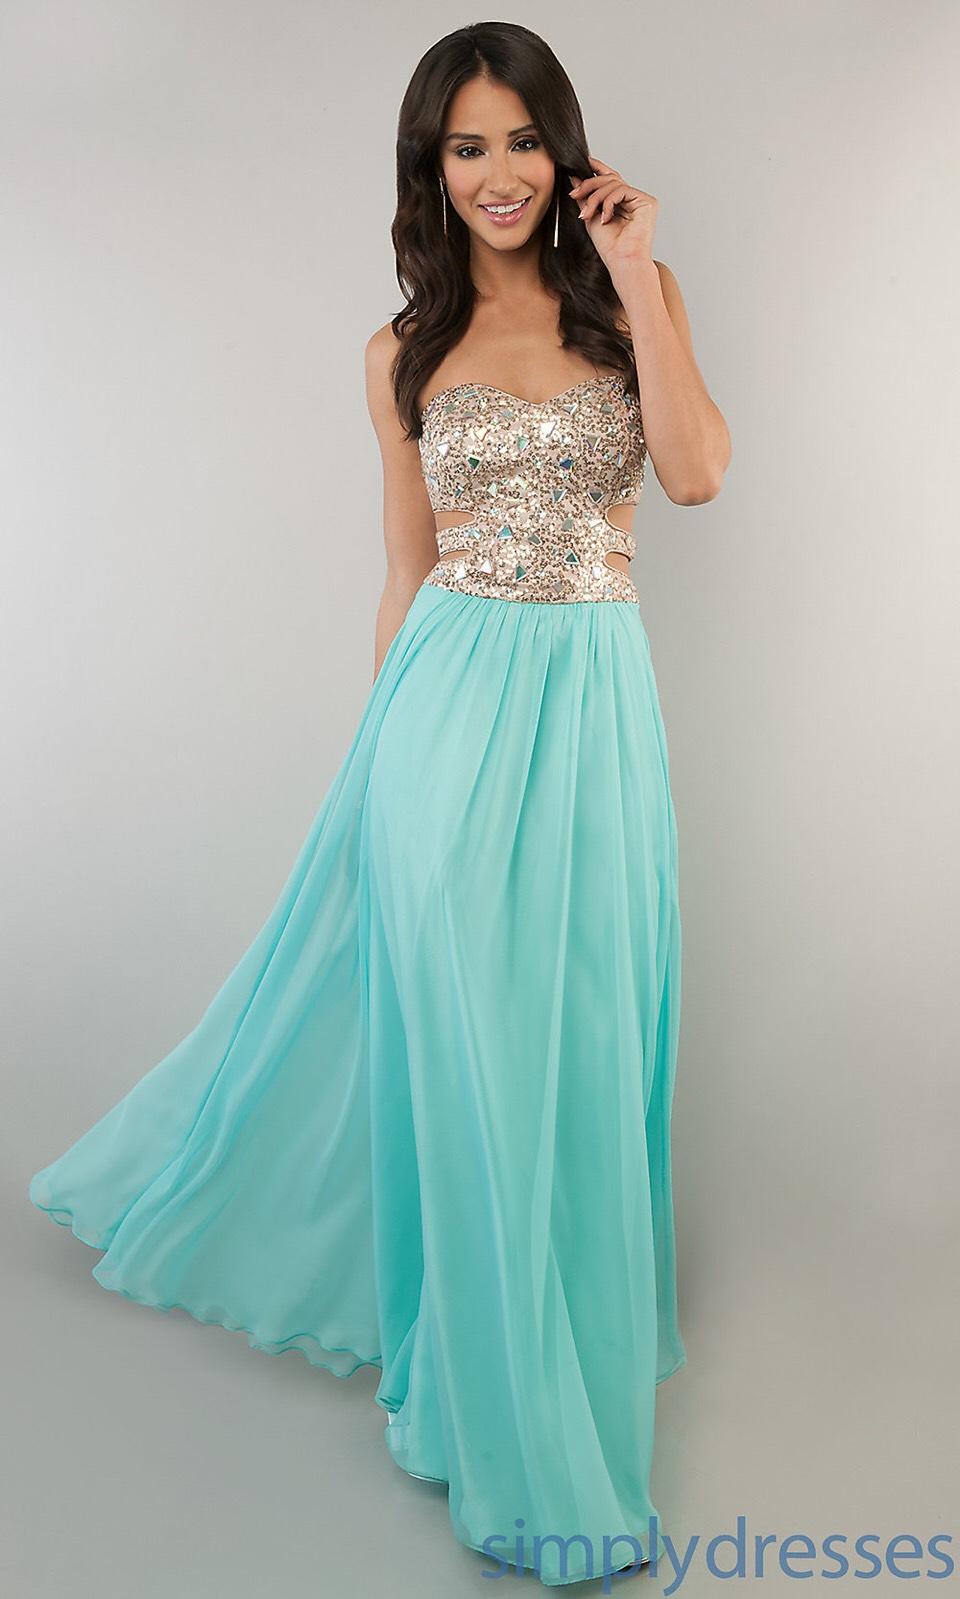 I love how it has turquoise jewels at the top blended with the gold